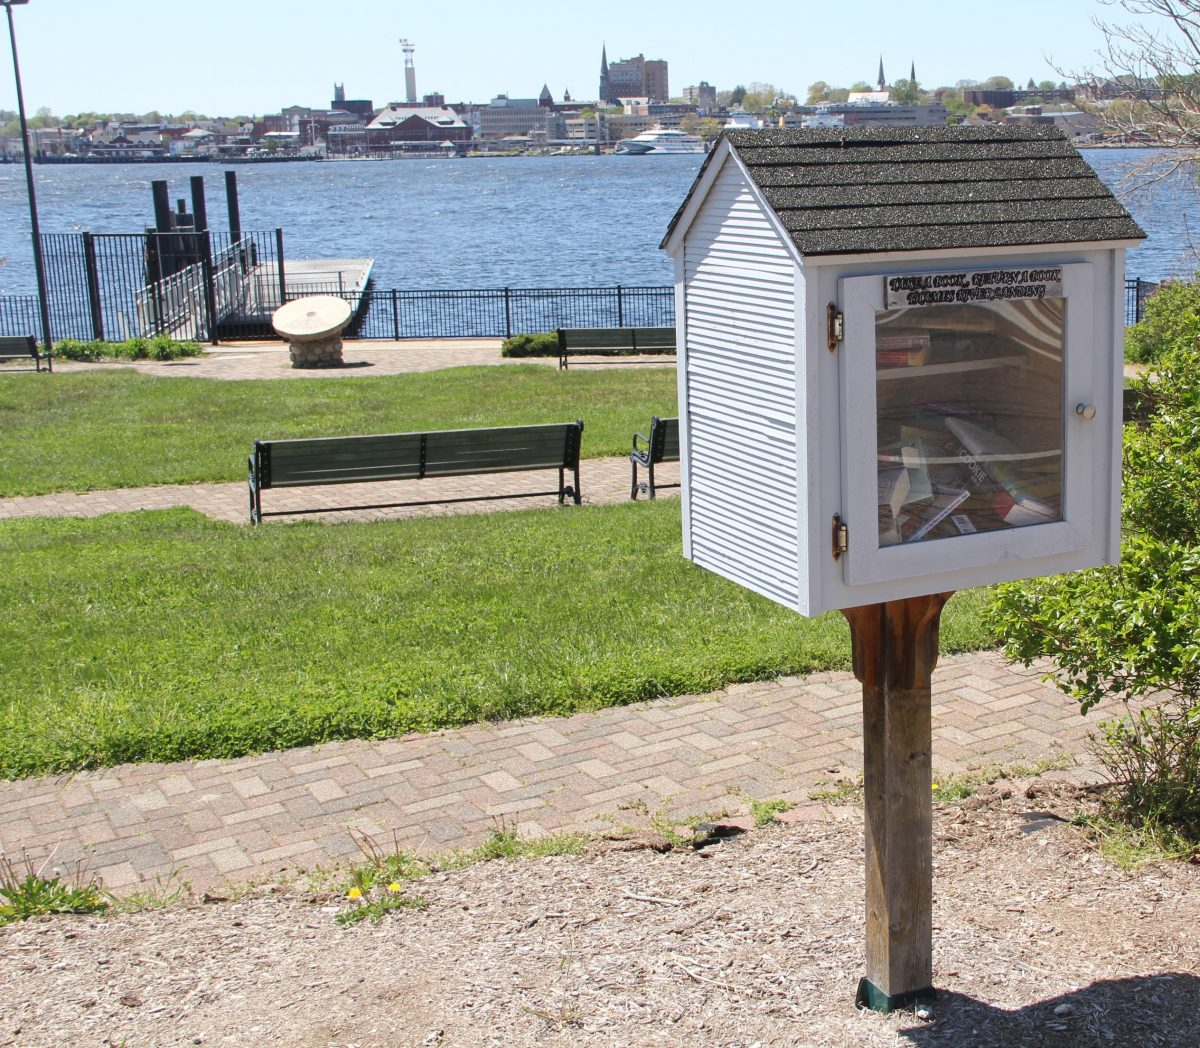 The Fort Griswold and Hidden Thames Street Quests both begin at Thames River Landing Park on Thames Street in Groton.